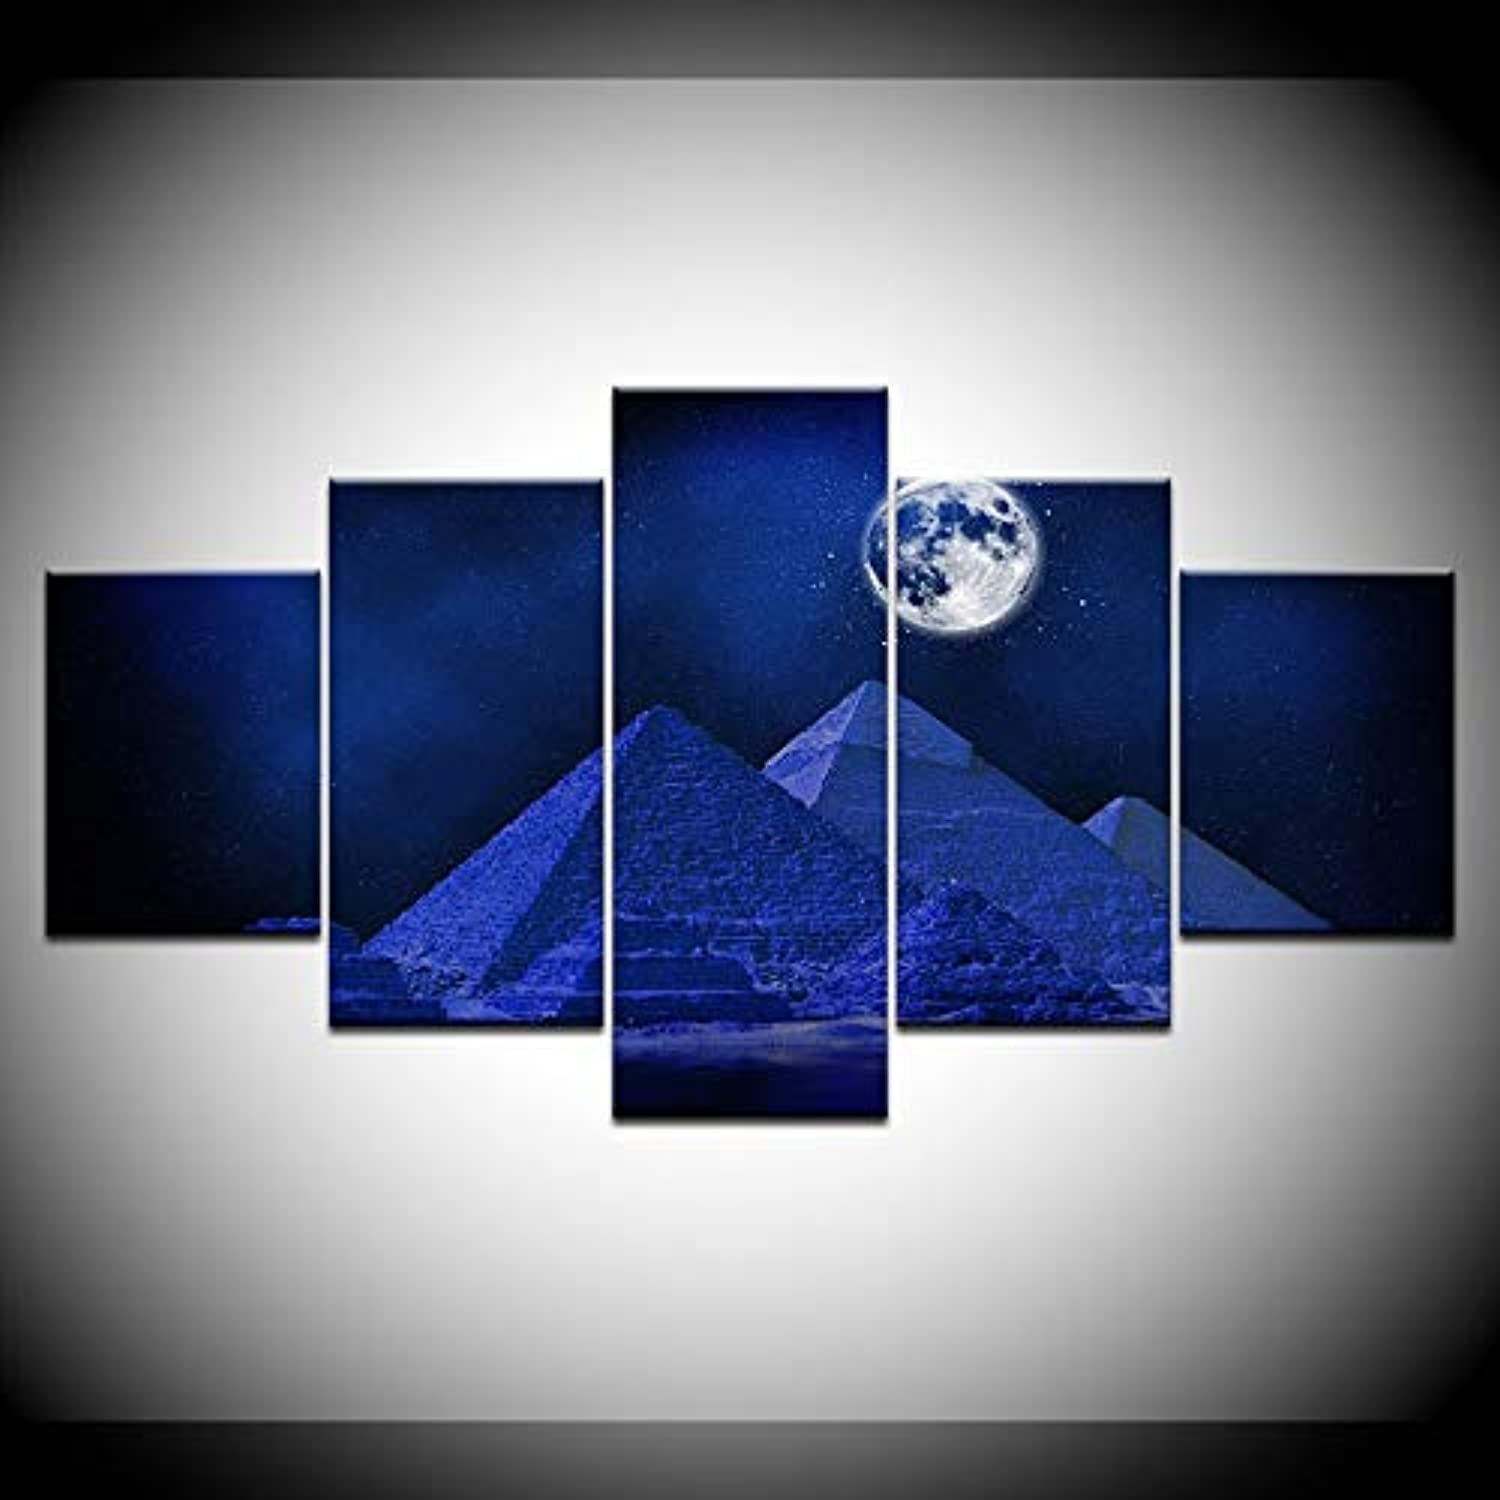 Wall Art Picture Modern Canvas Home Decor for Living Room 5 Pieces Egypt Pyramid Moon Paintings Modular HD Printed Poster